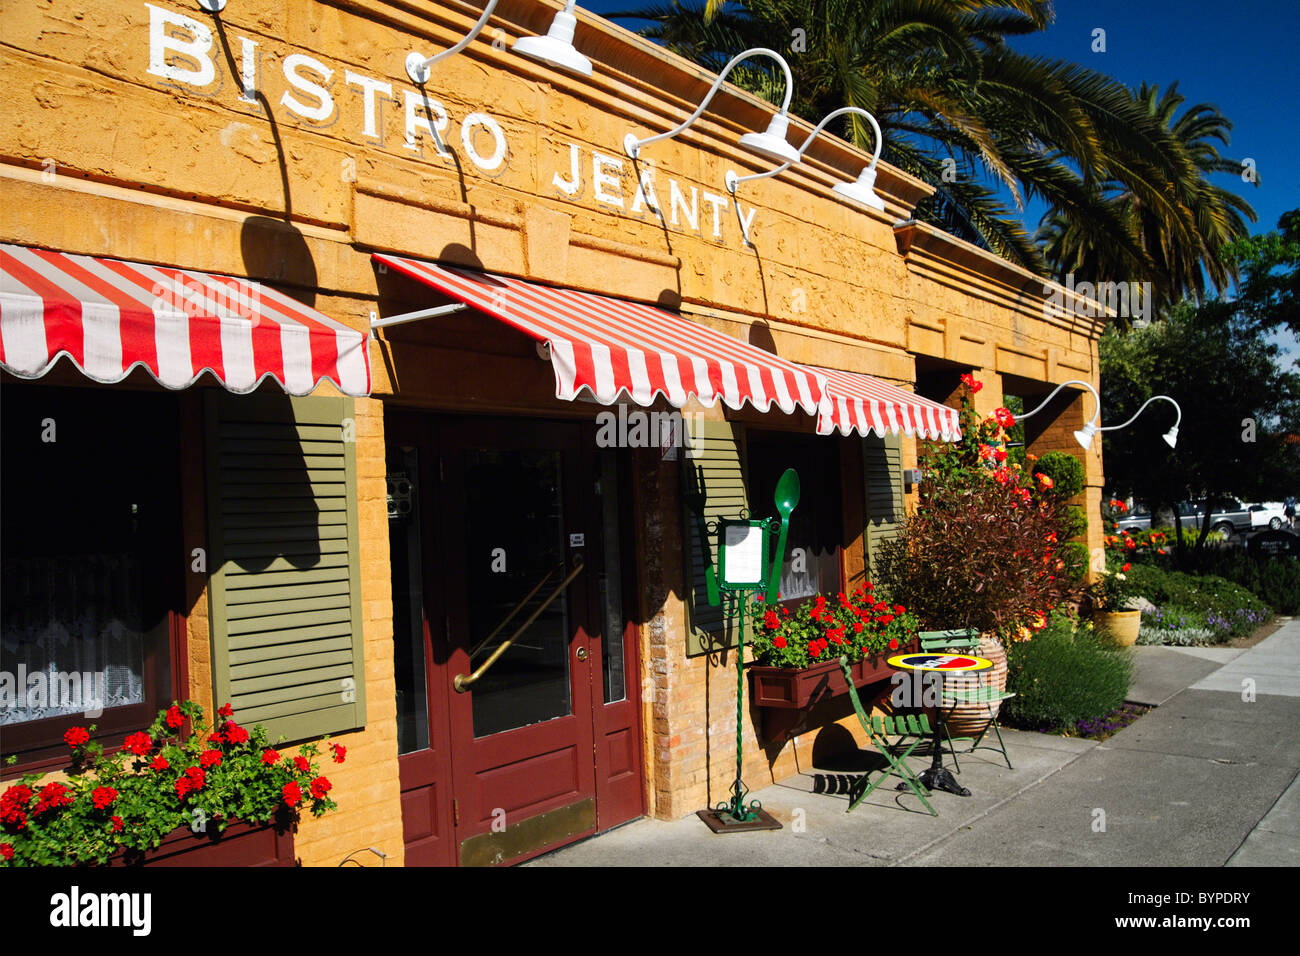 Entrance of a French Bistro, Yountville, Napa Valley, California Stock Photo